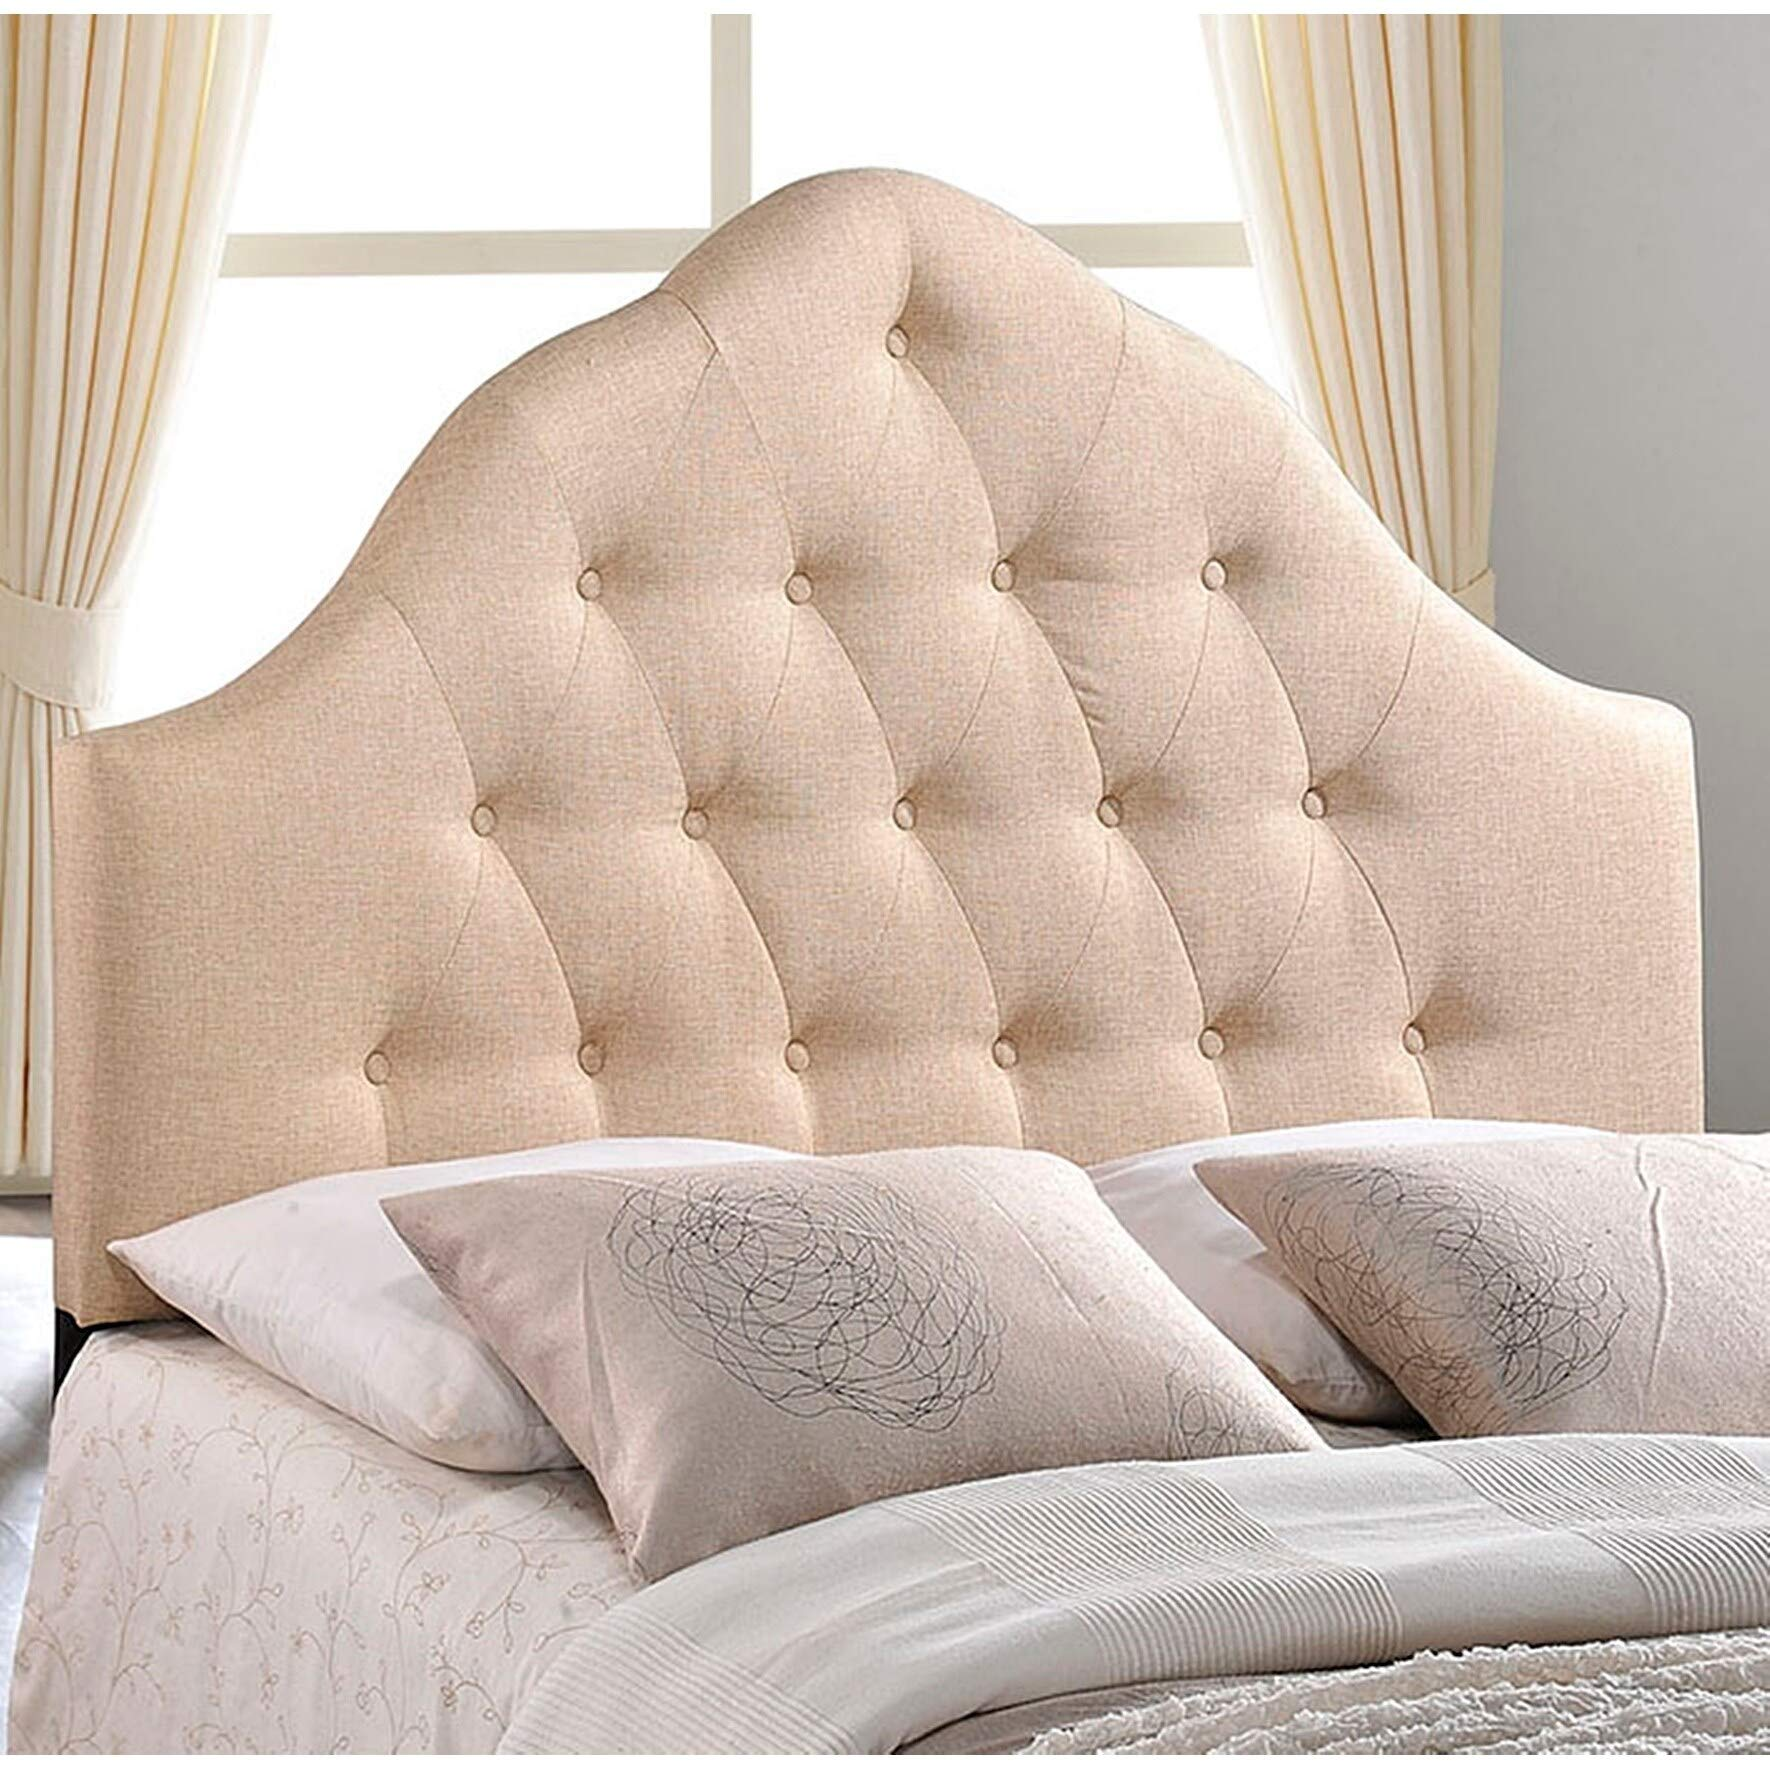 Brighton King Size Beige Fabric Upholstered Button Tufted Headboard Modern Contemporary Traditional Wood Padded by Unknown